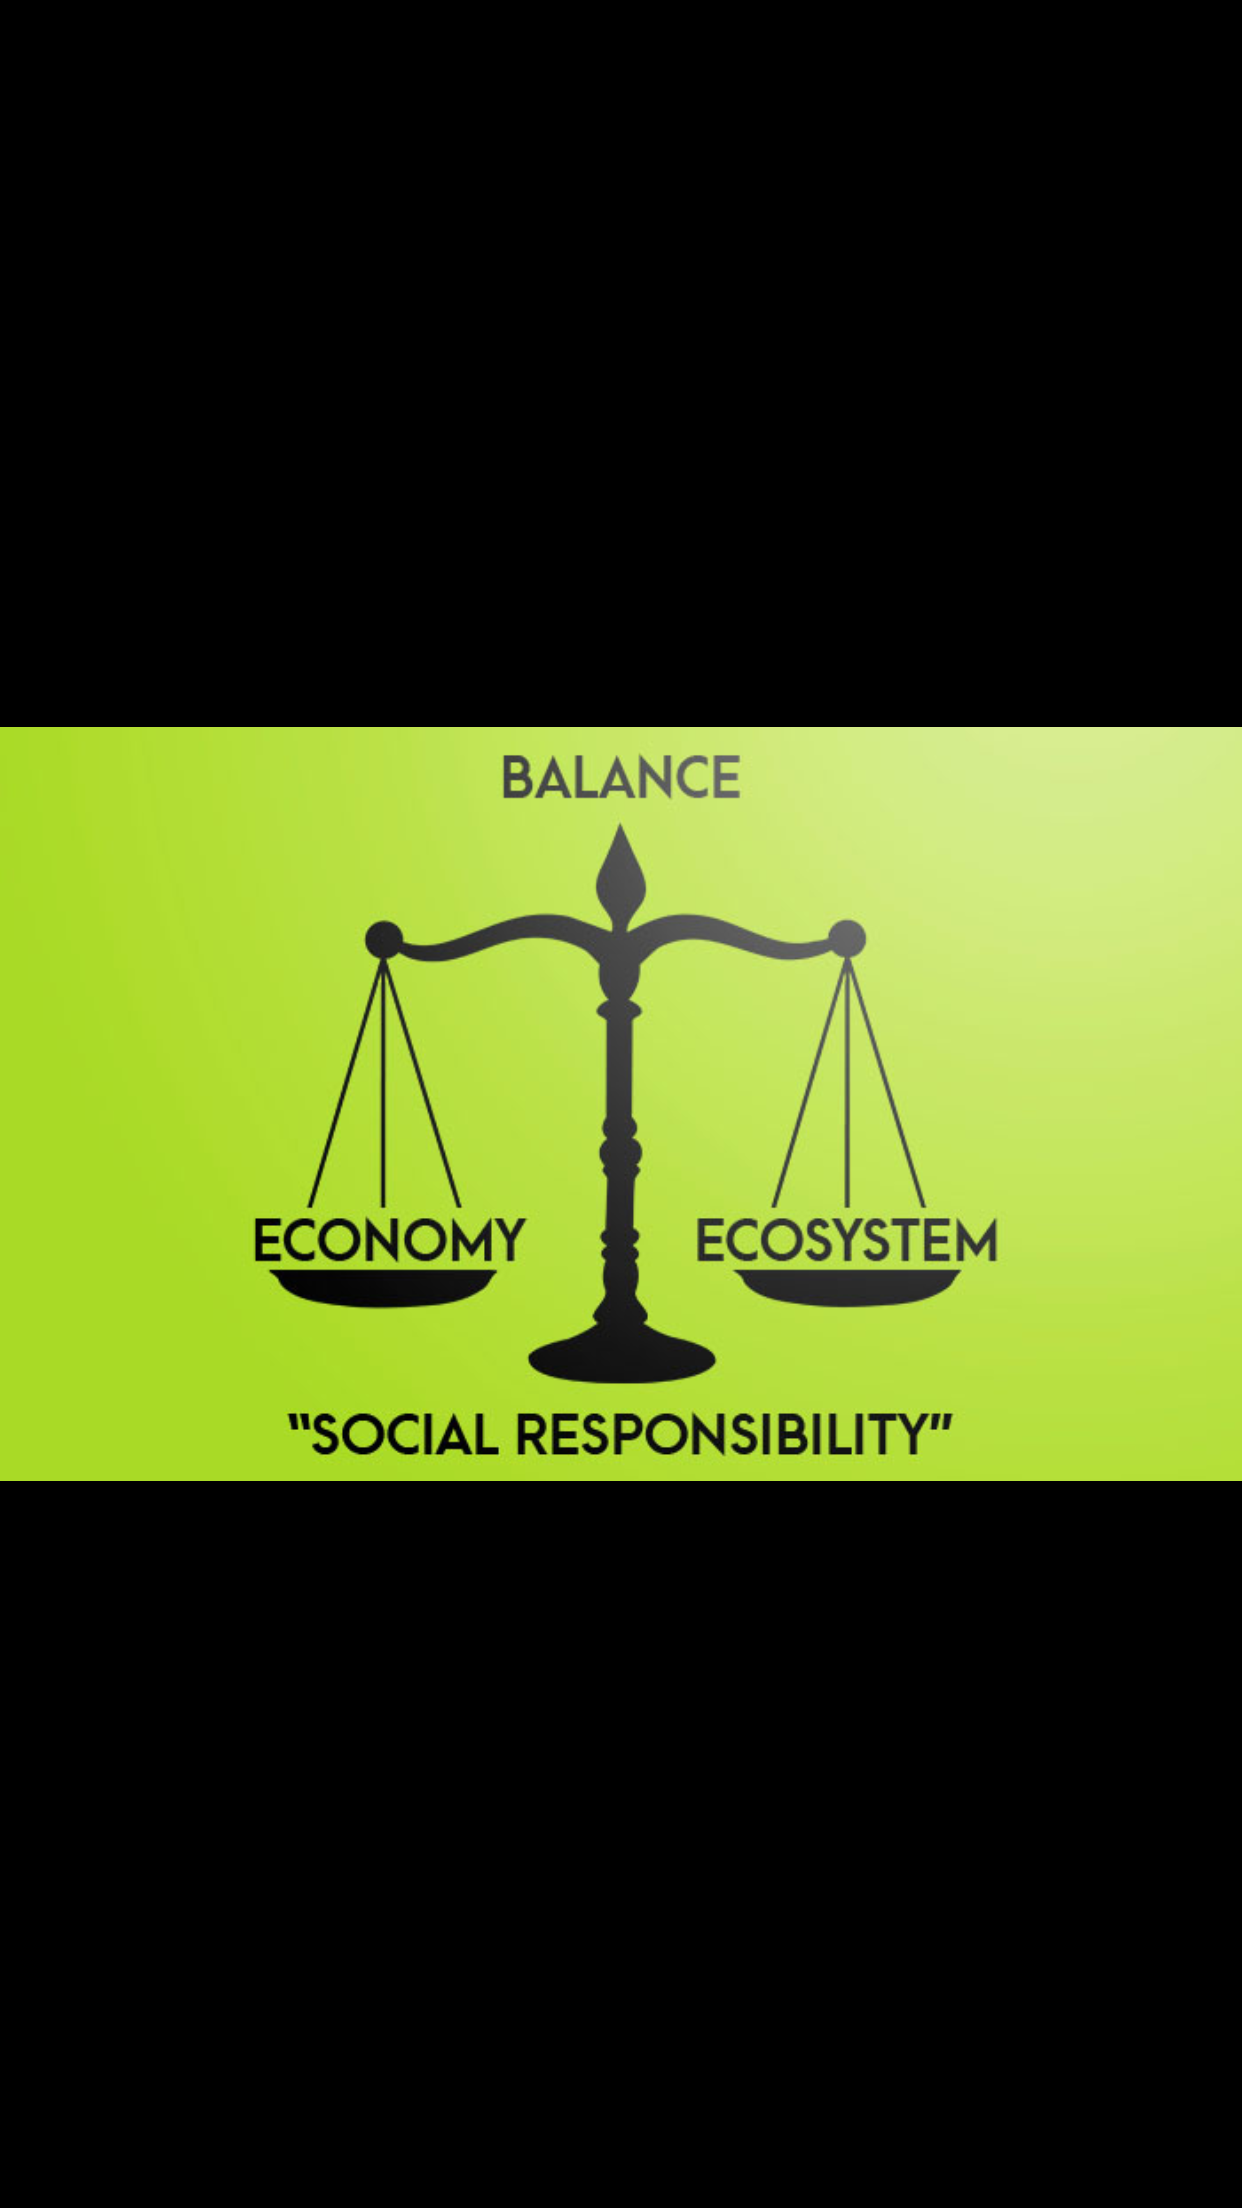 This shows that part of being socially responsible is a balance of economy & ecosystem.